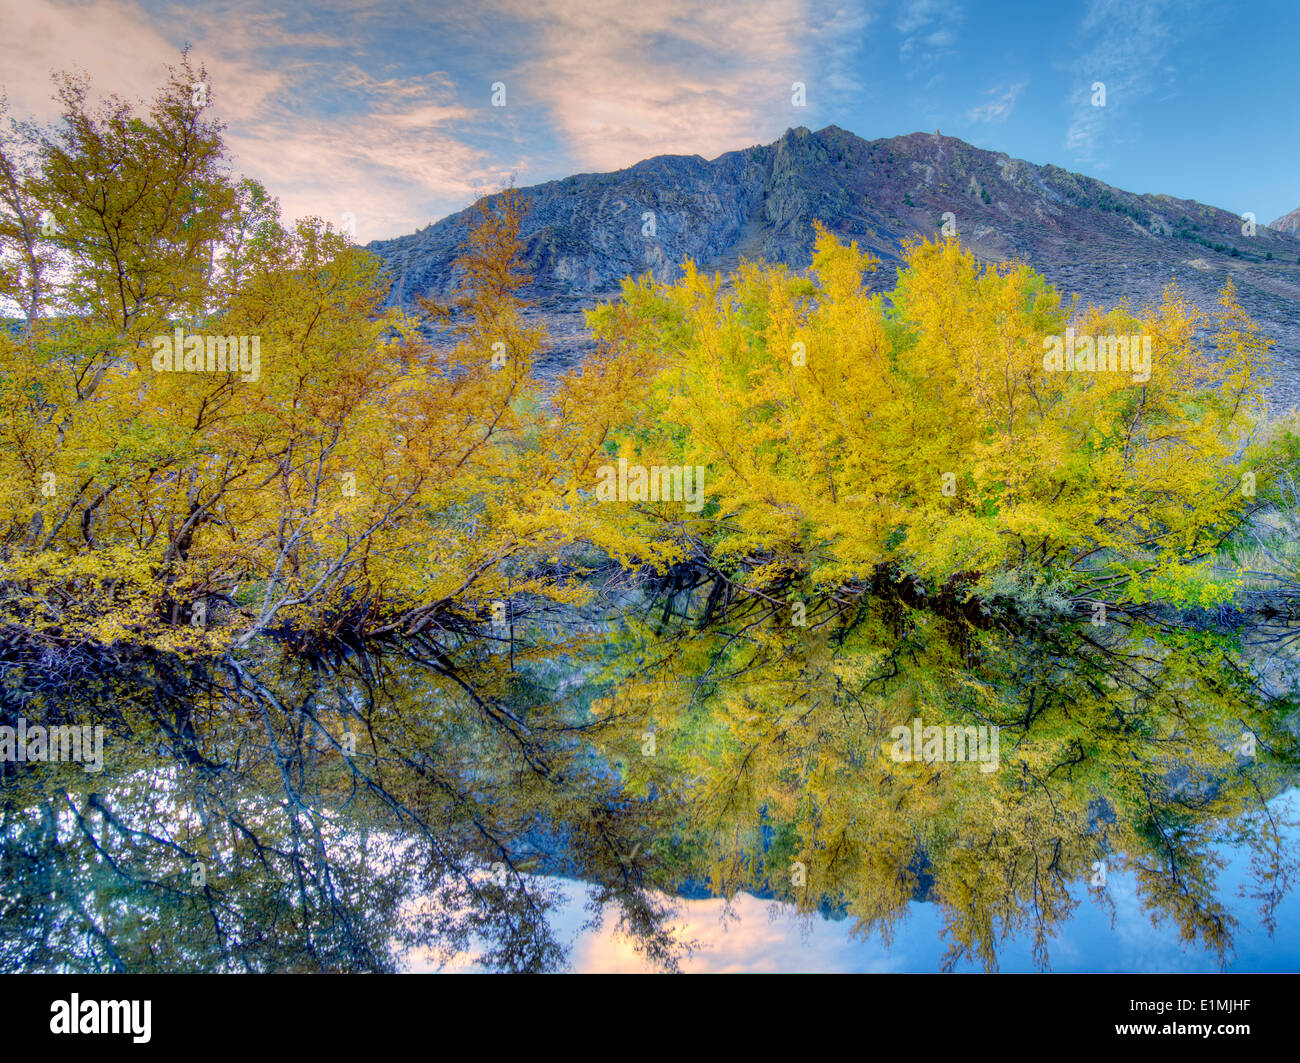 Beaver pond and fall color on McGee Creek. Eastern Sierra Nevada Mountains. California - Stock Image